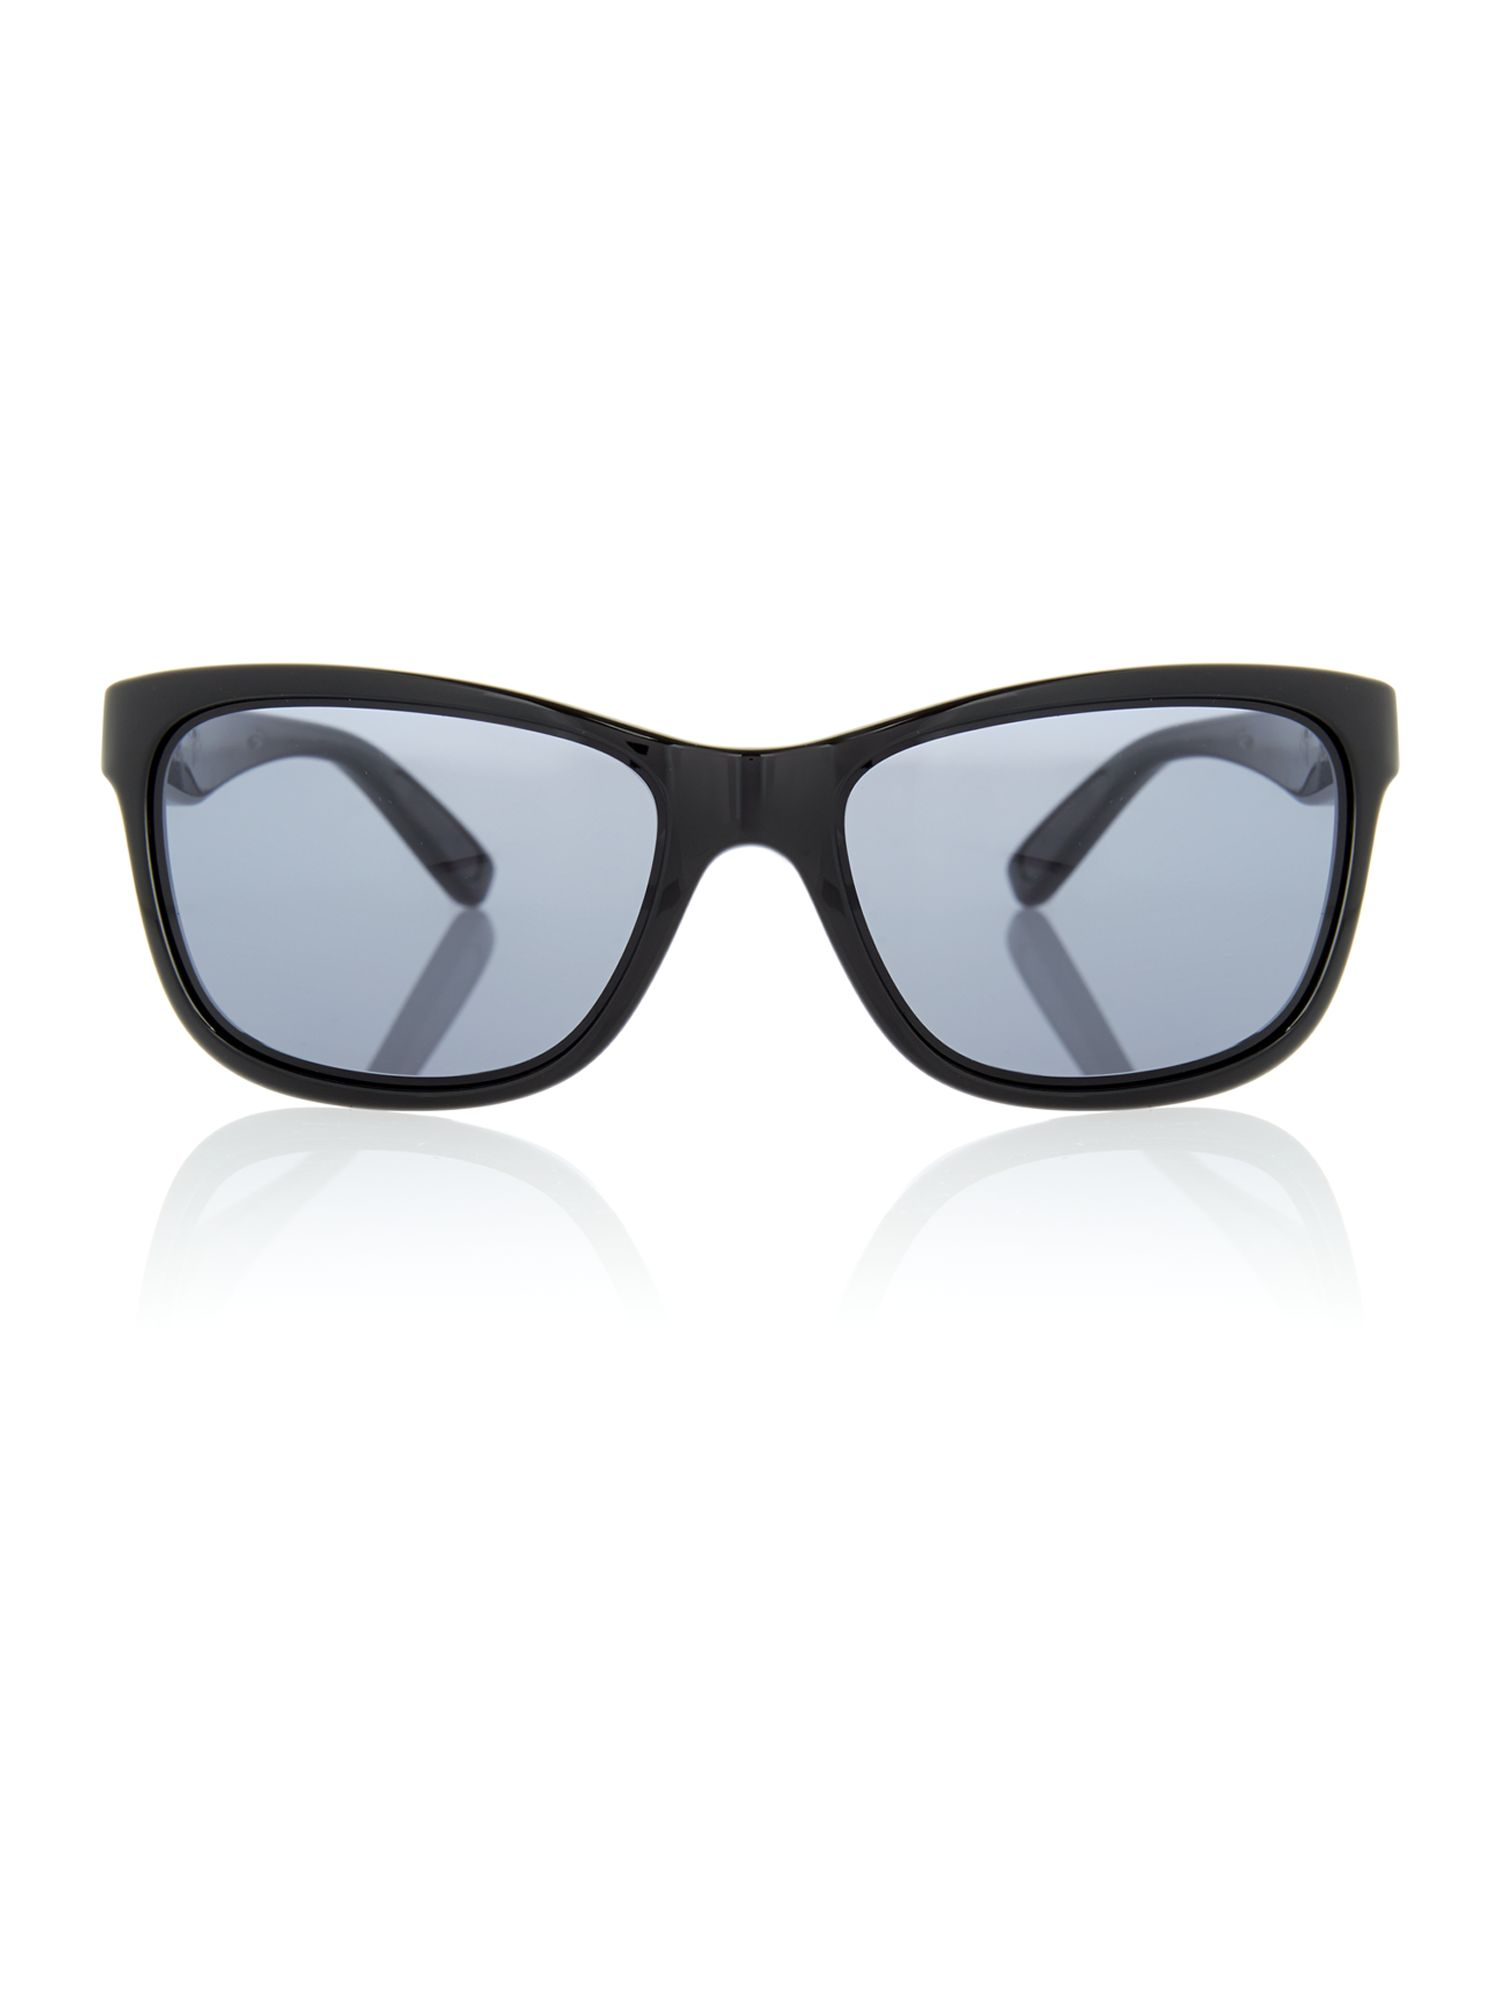 Ladies 0oo9179 sunglasses